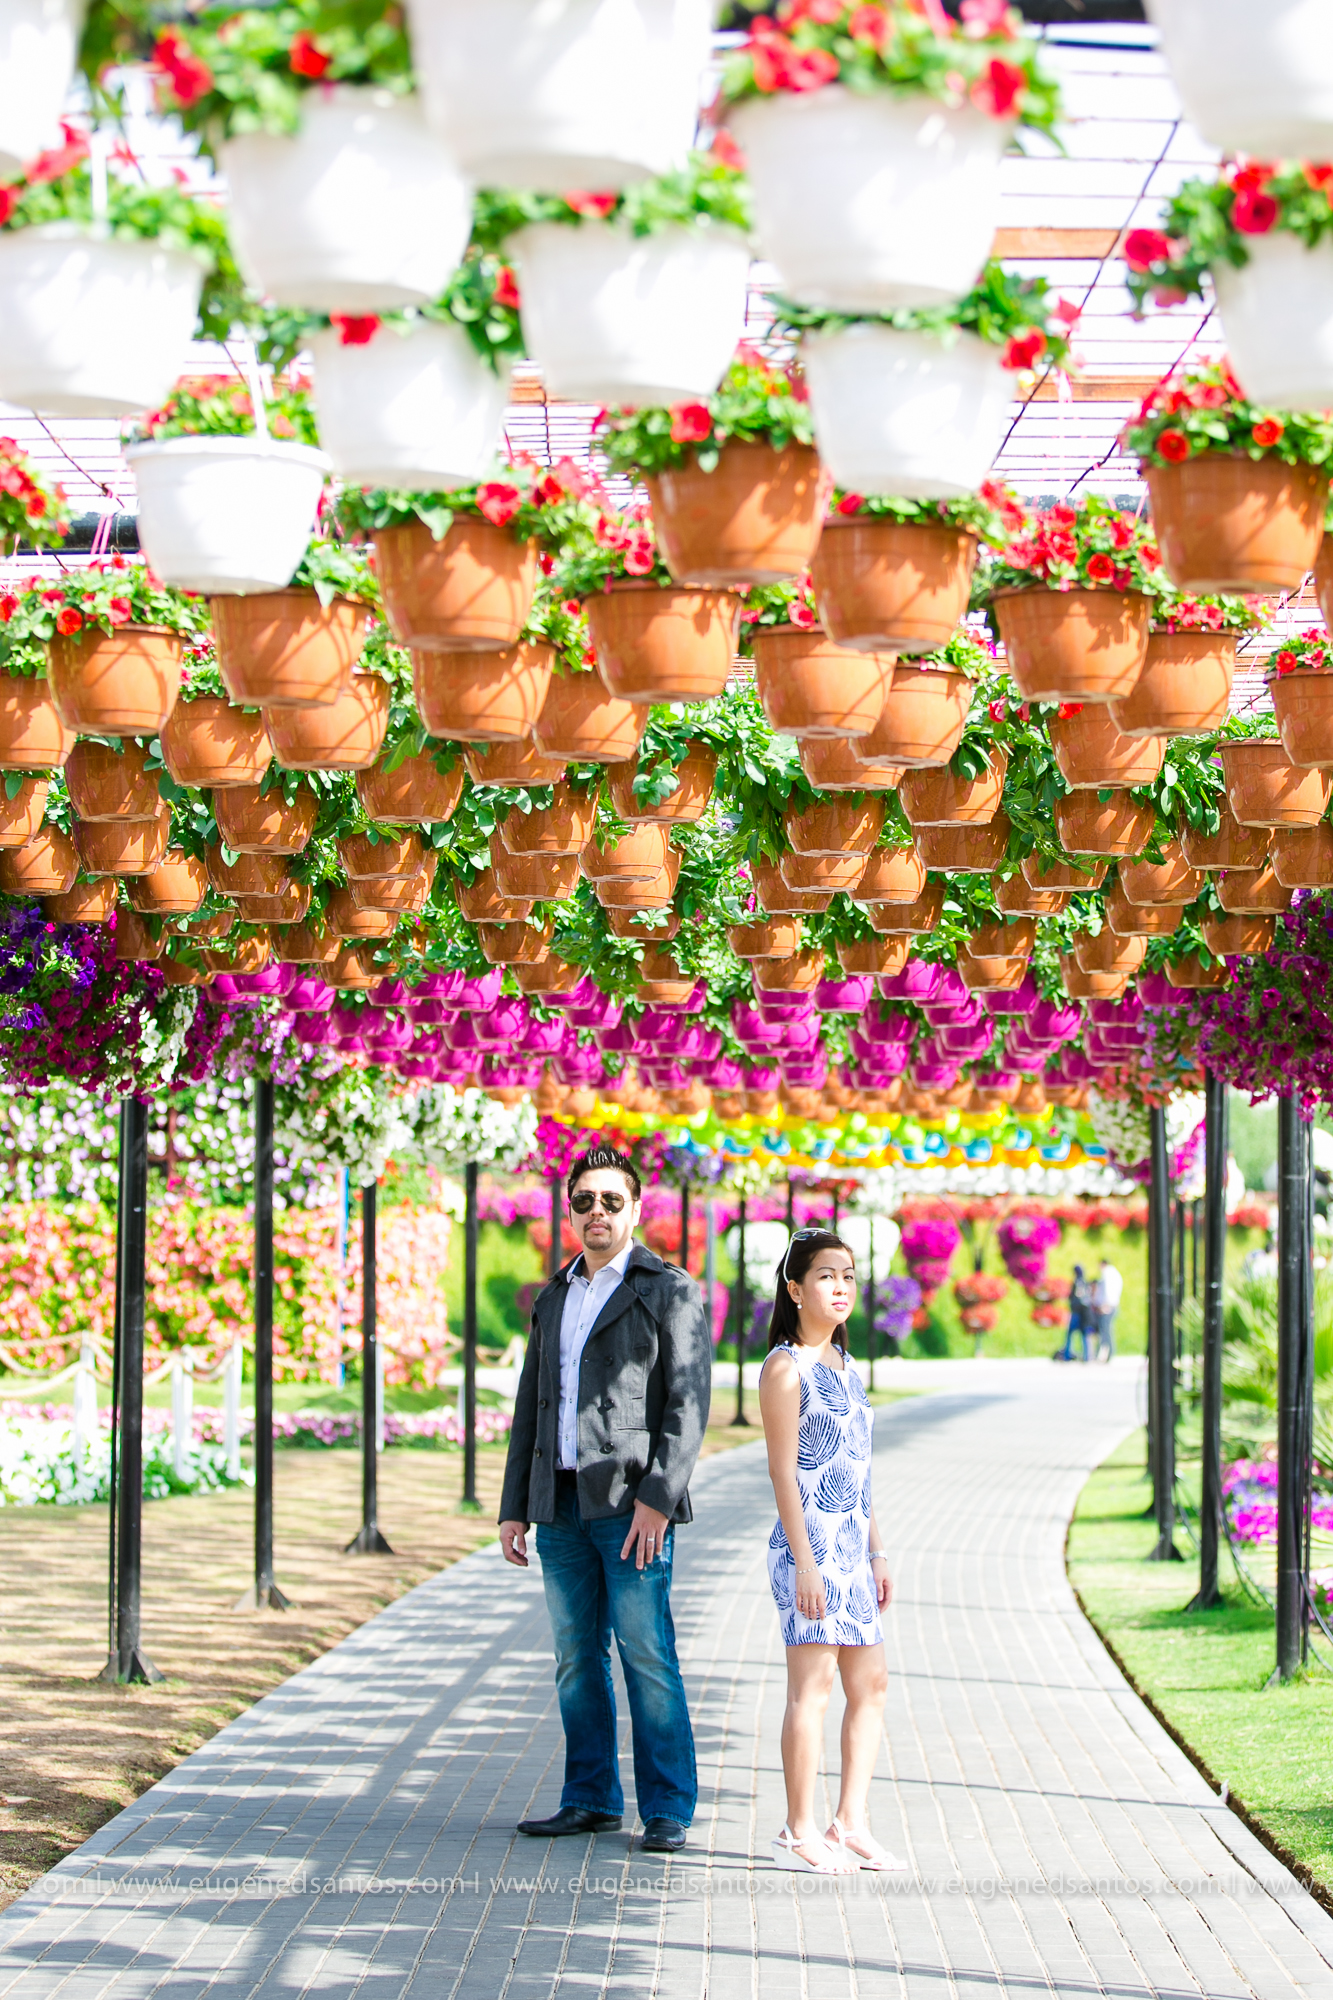 ES - Dubai Wedding Photography DR-26.jpg